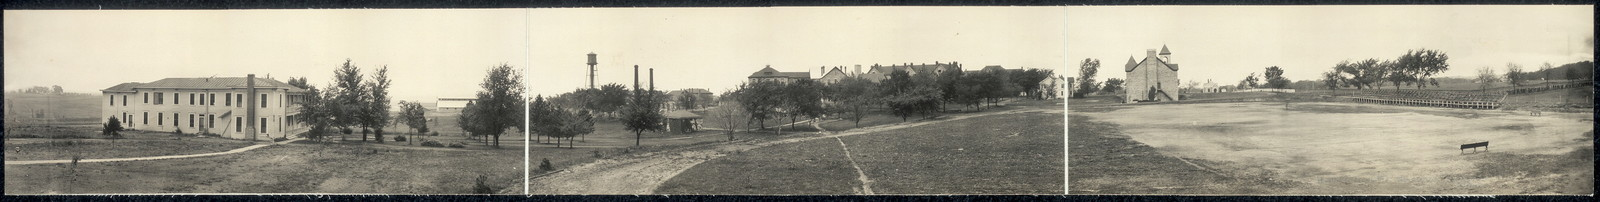 Haskell Institute, Lawrence, Kansas, general view from north-east